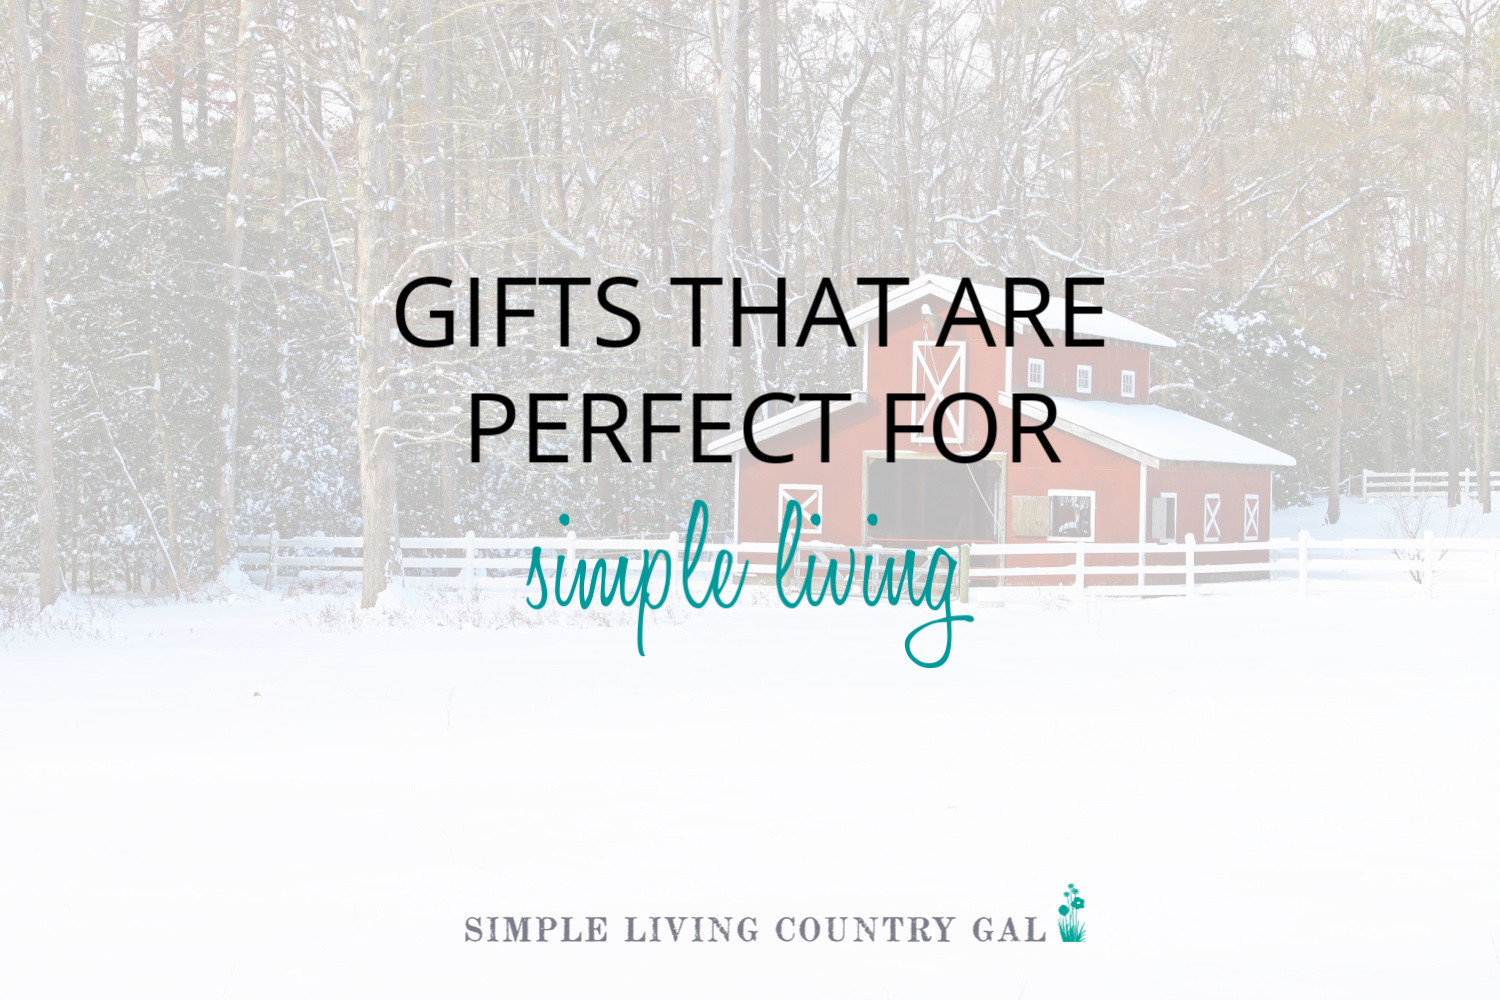 Gifts that are Perfect for Simple Living